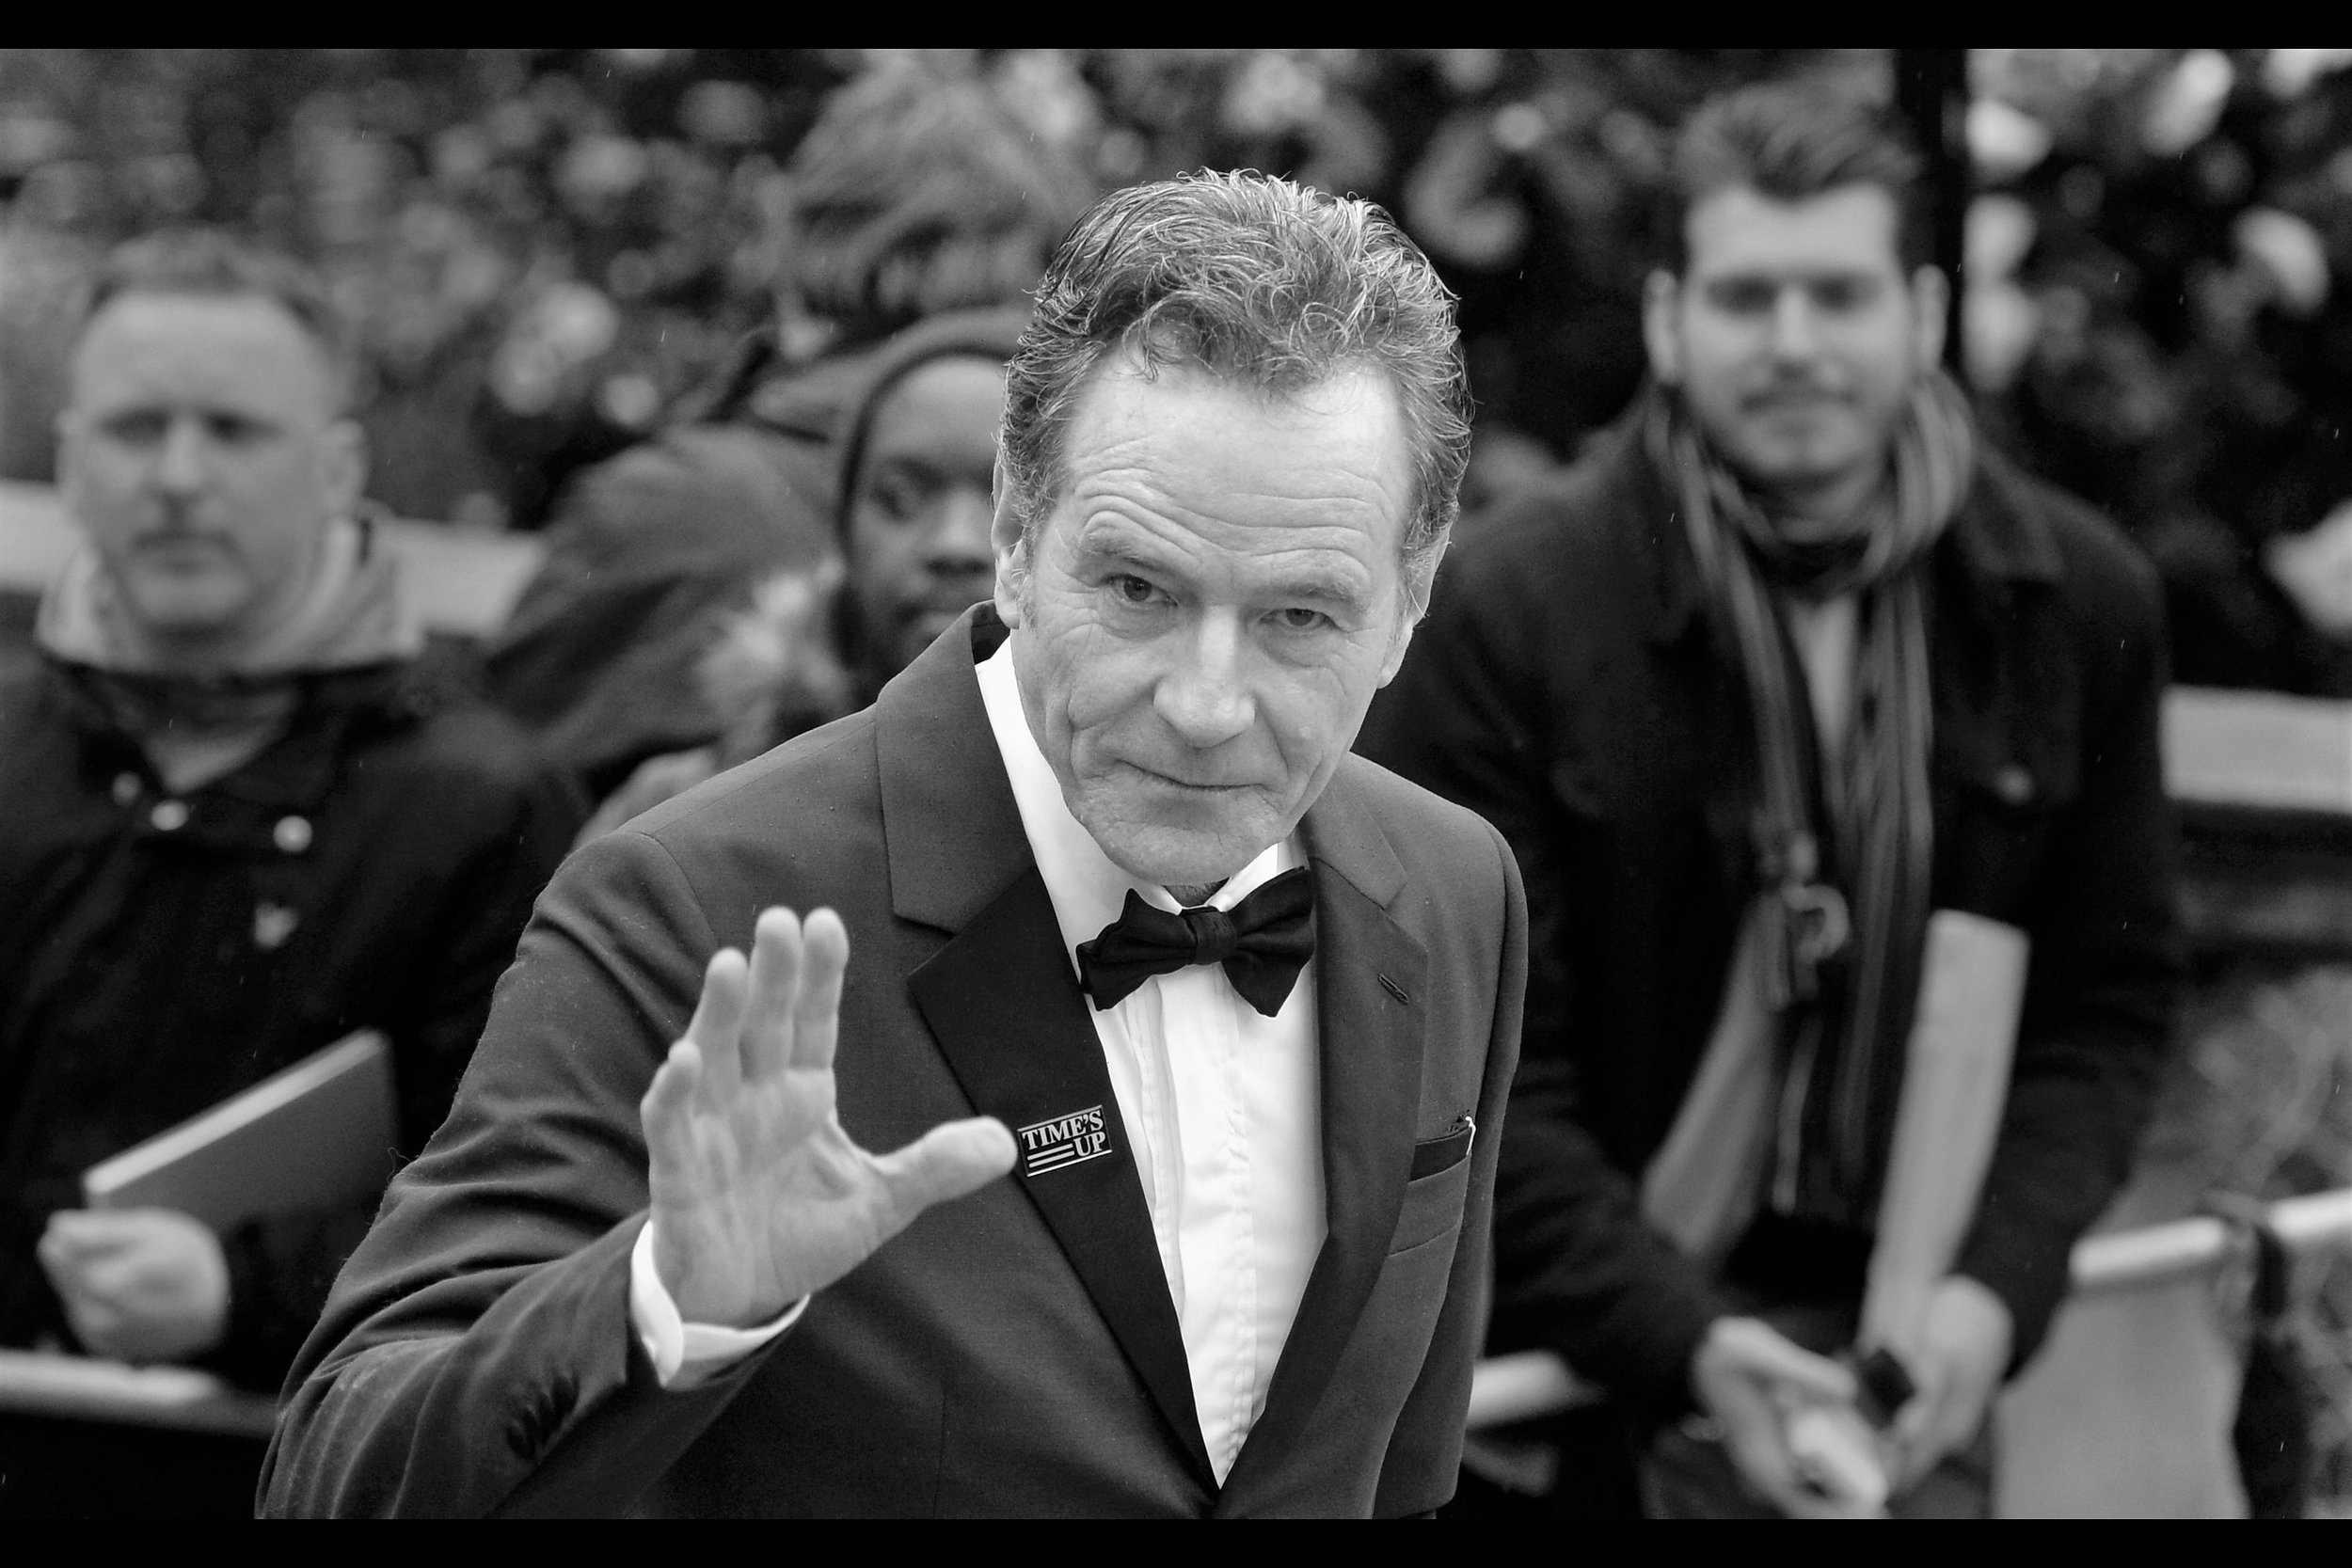 """""""Time's up when I say it is, and I say it is. Also, you had your one chance, and you blew it, and you know it"""" . Bryan Cranston is    correct   ."""